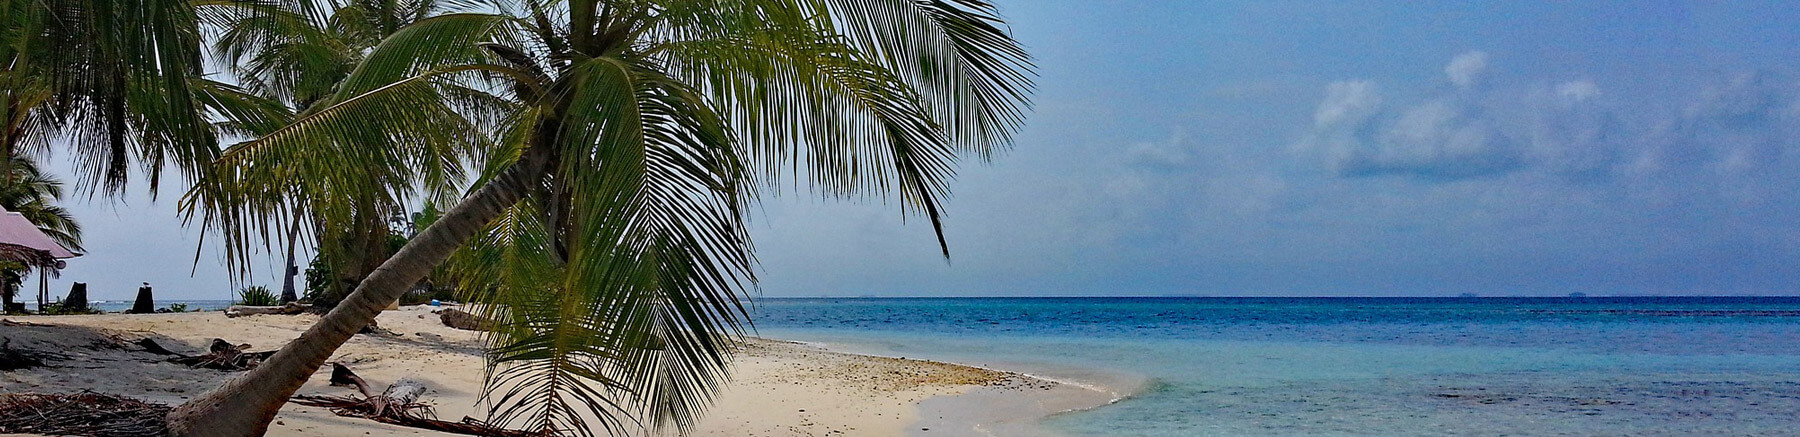 Beautiful quiet beach in Panama with a palm tree in the foreground